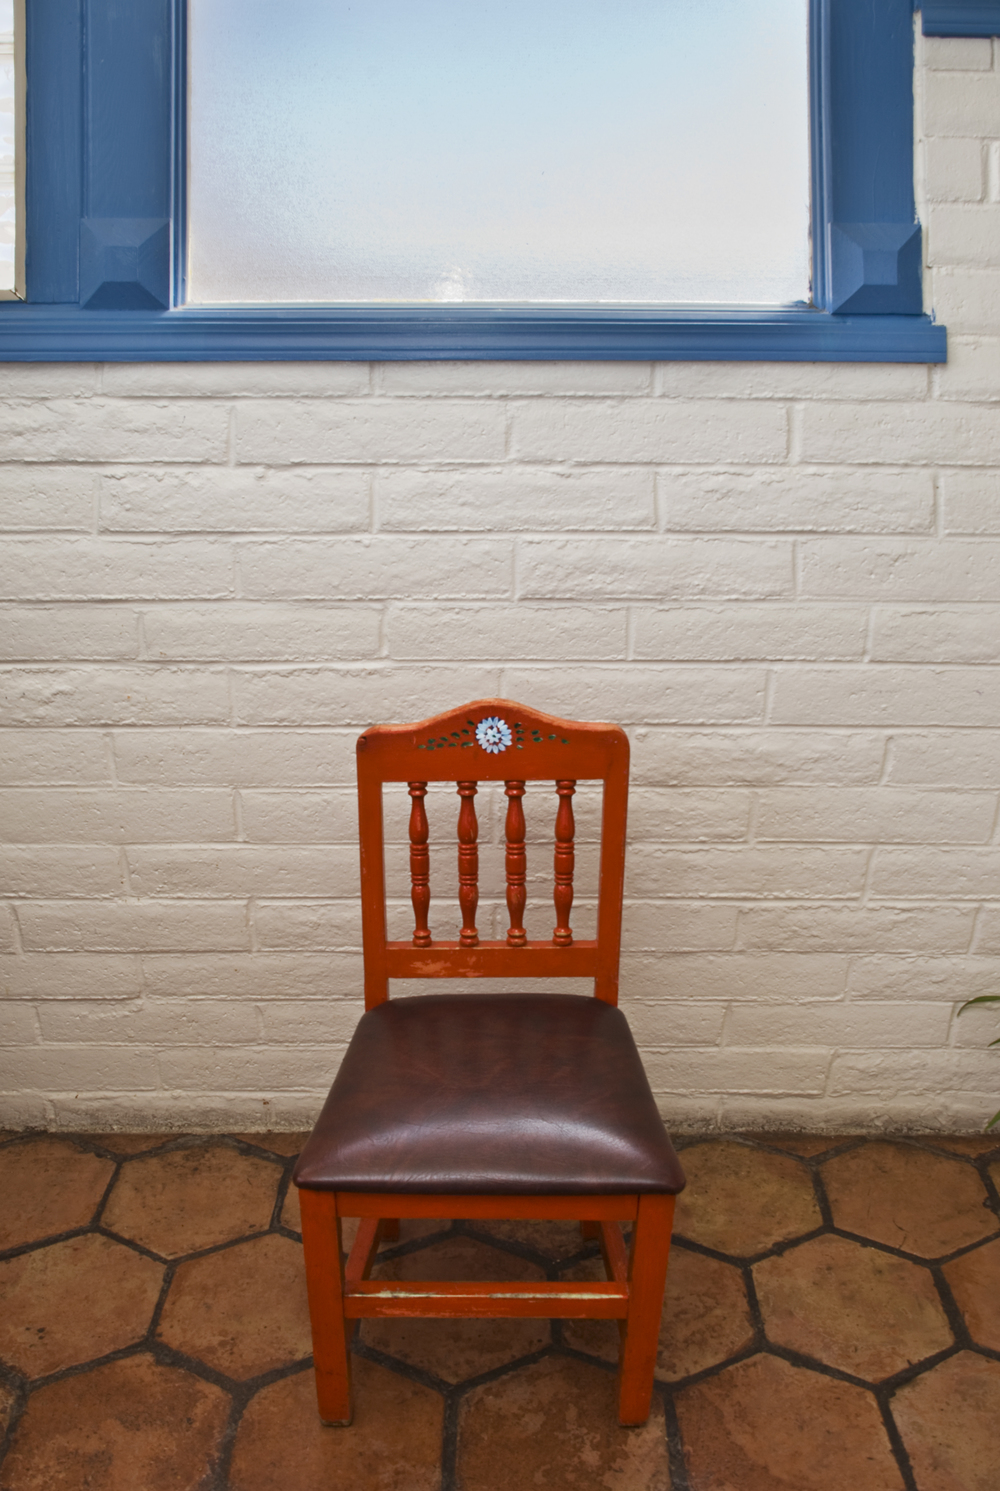 4-9-10 Orange_chair.jpg